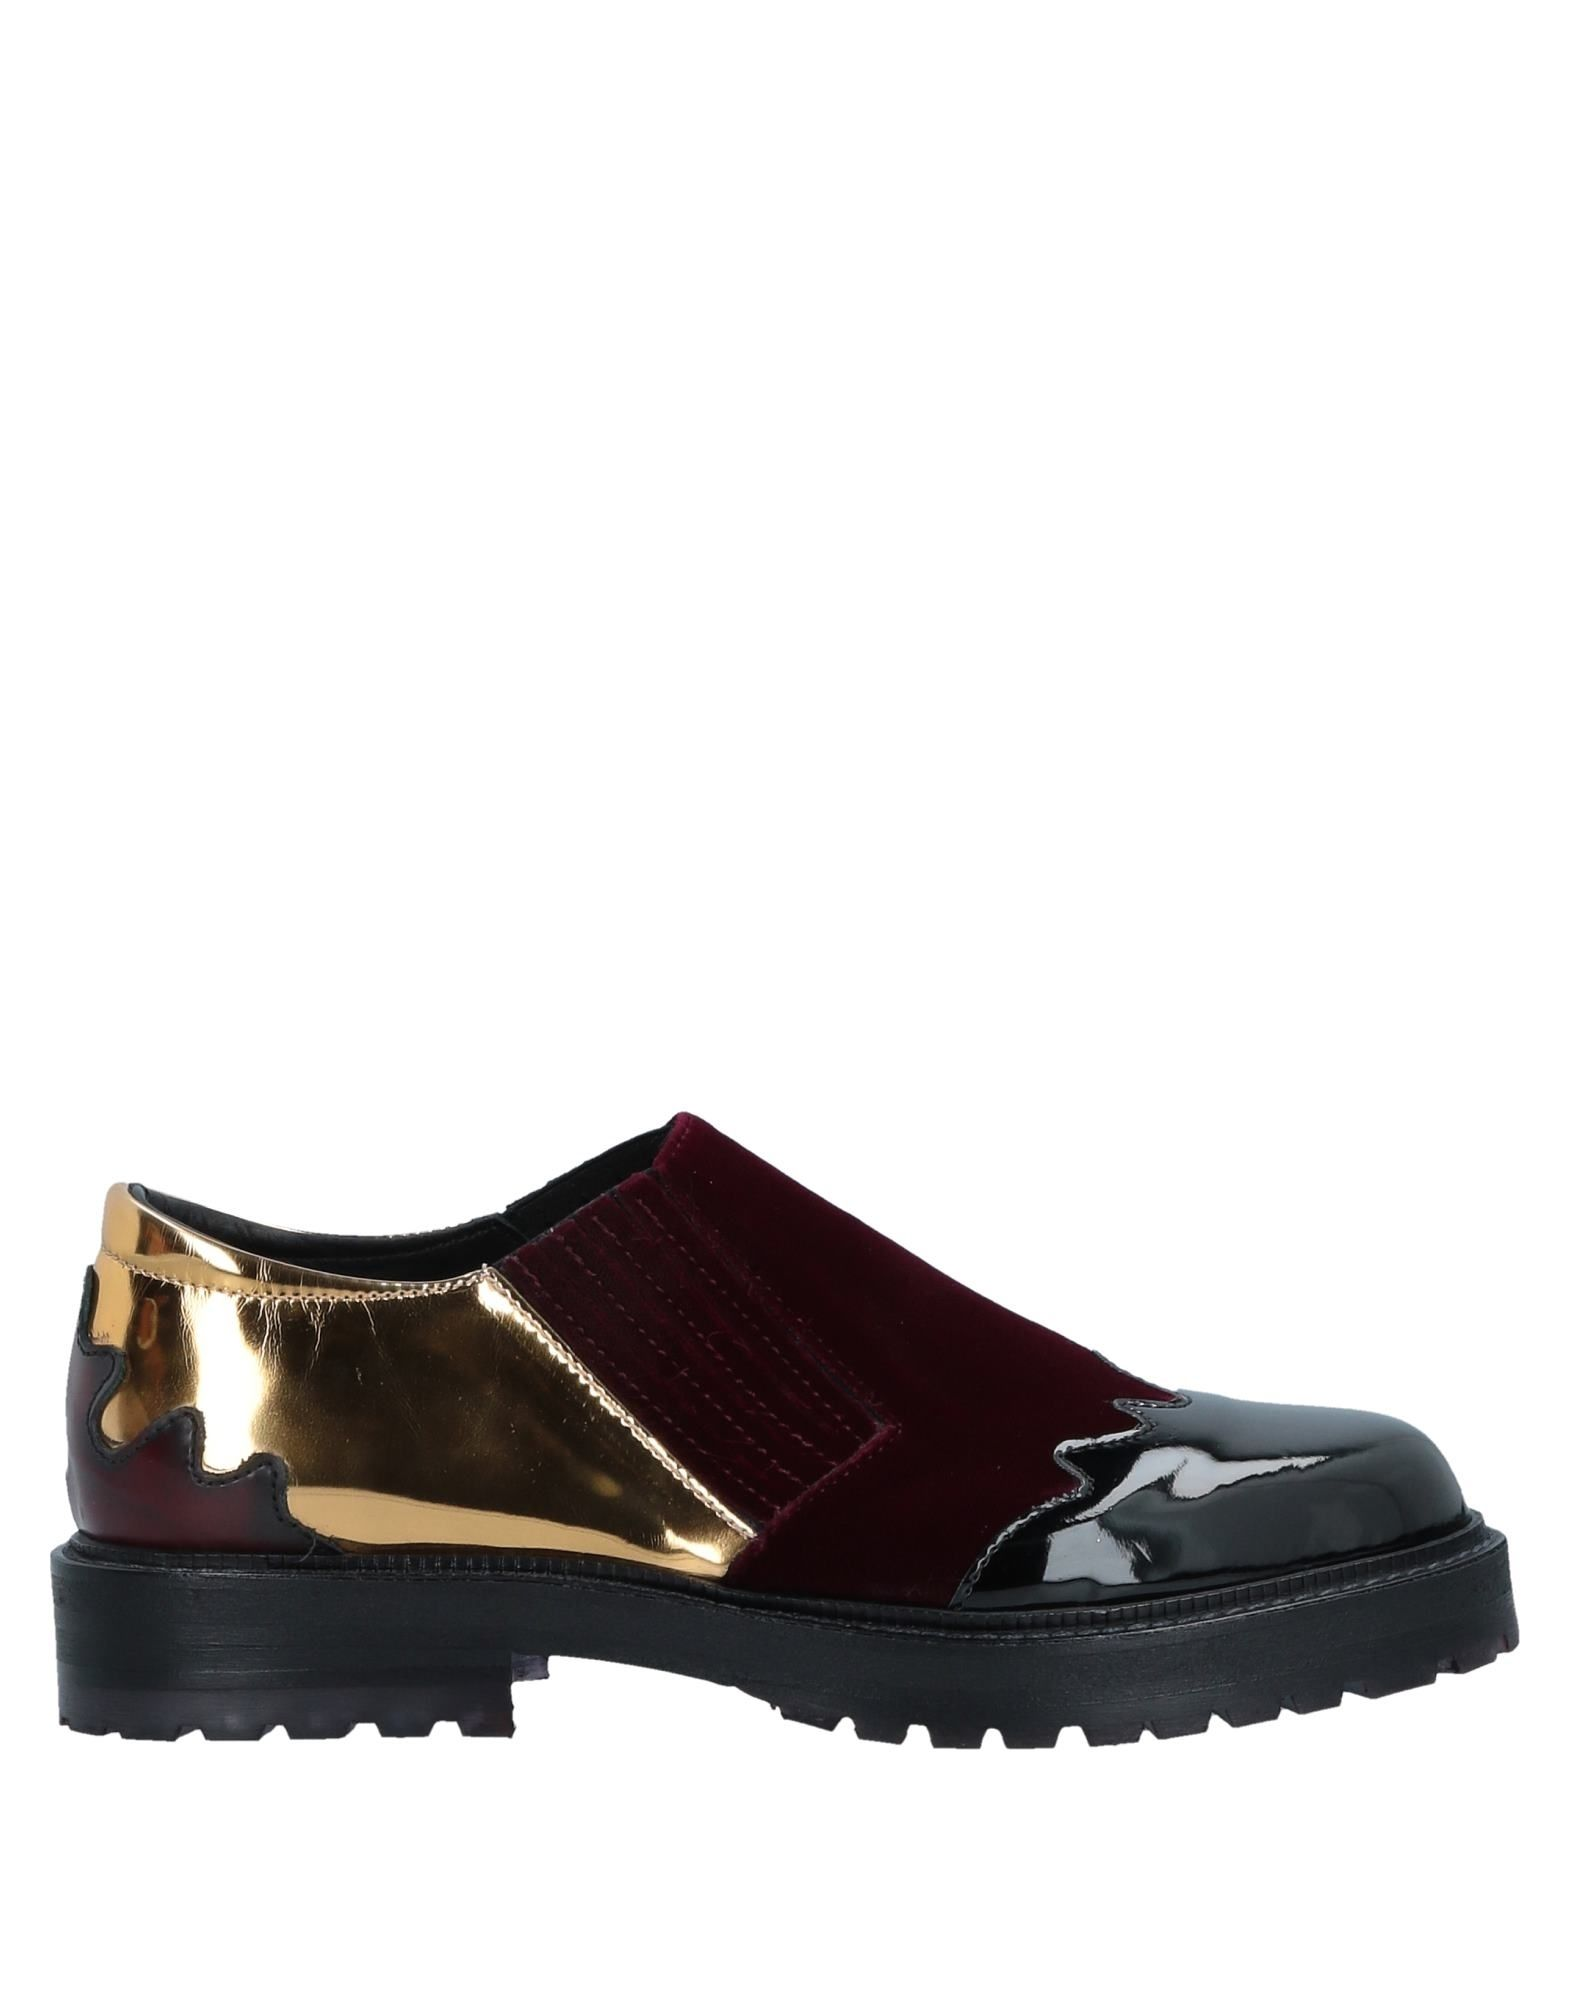 Tipe E Tacchi Loafers - Women Tipe on E Tacchi Loafers online on Tipe  Australia - 11519391VX cb35ff